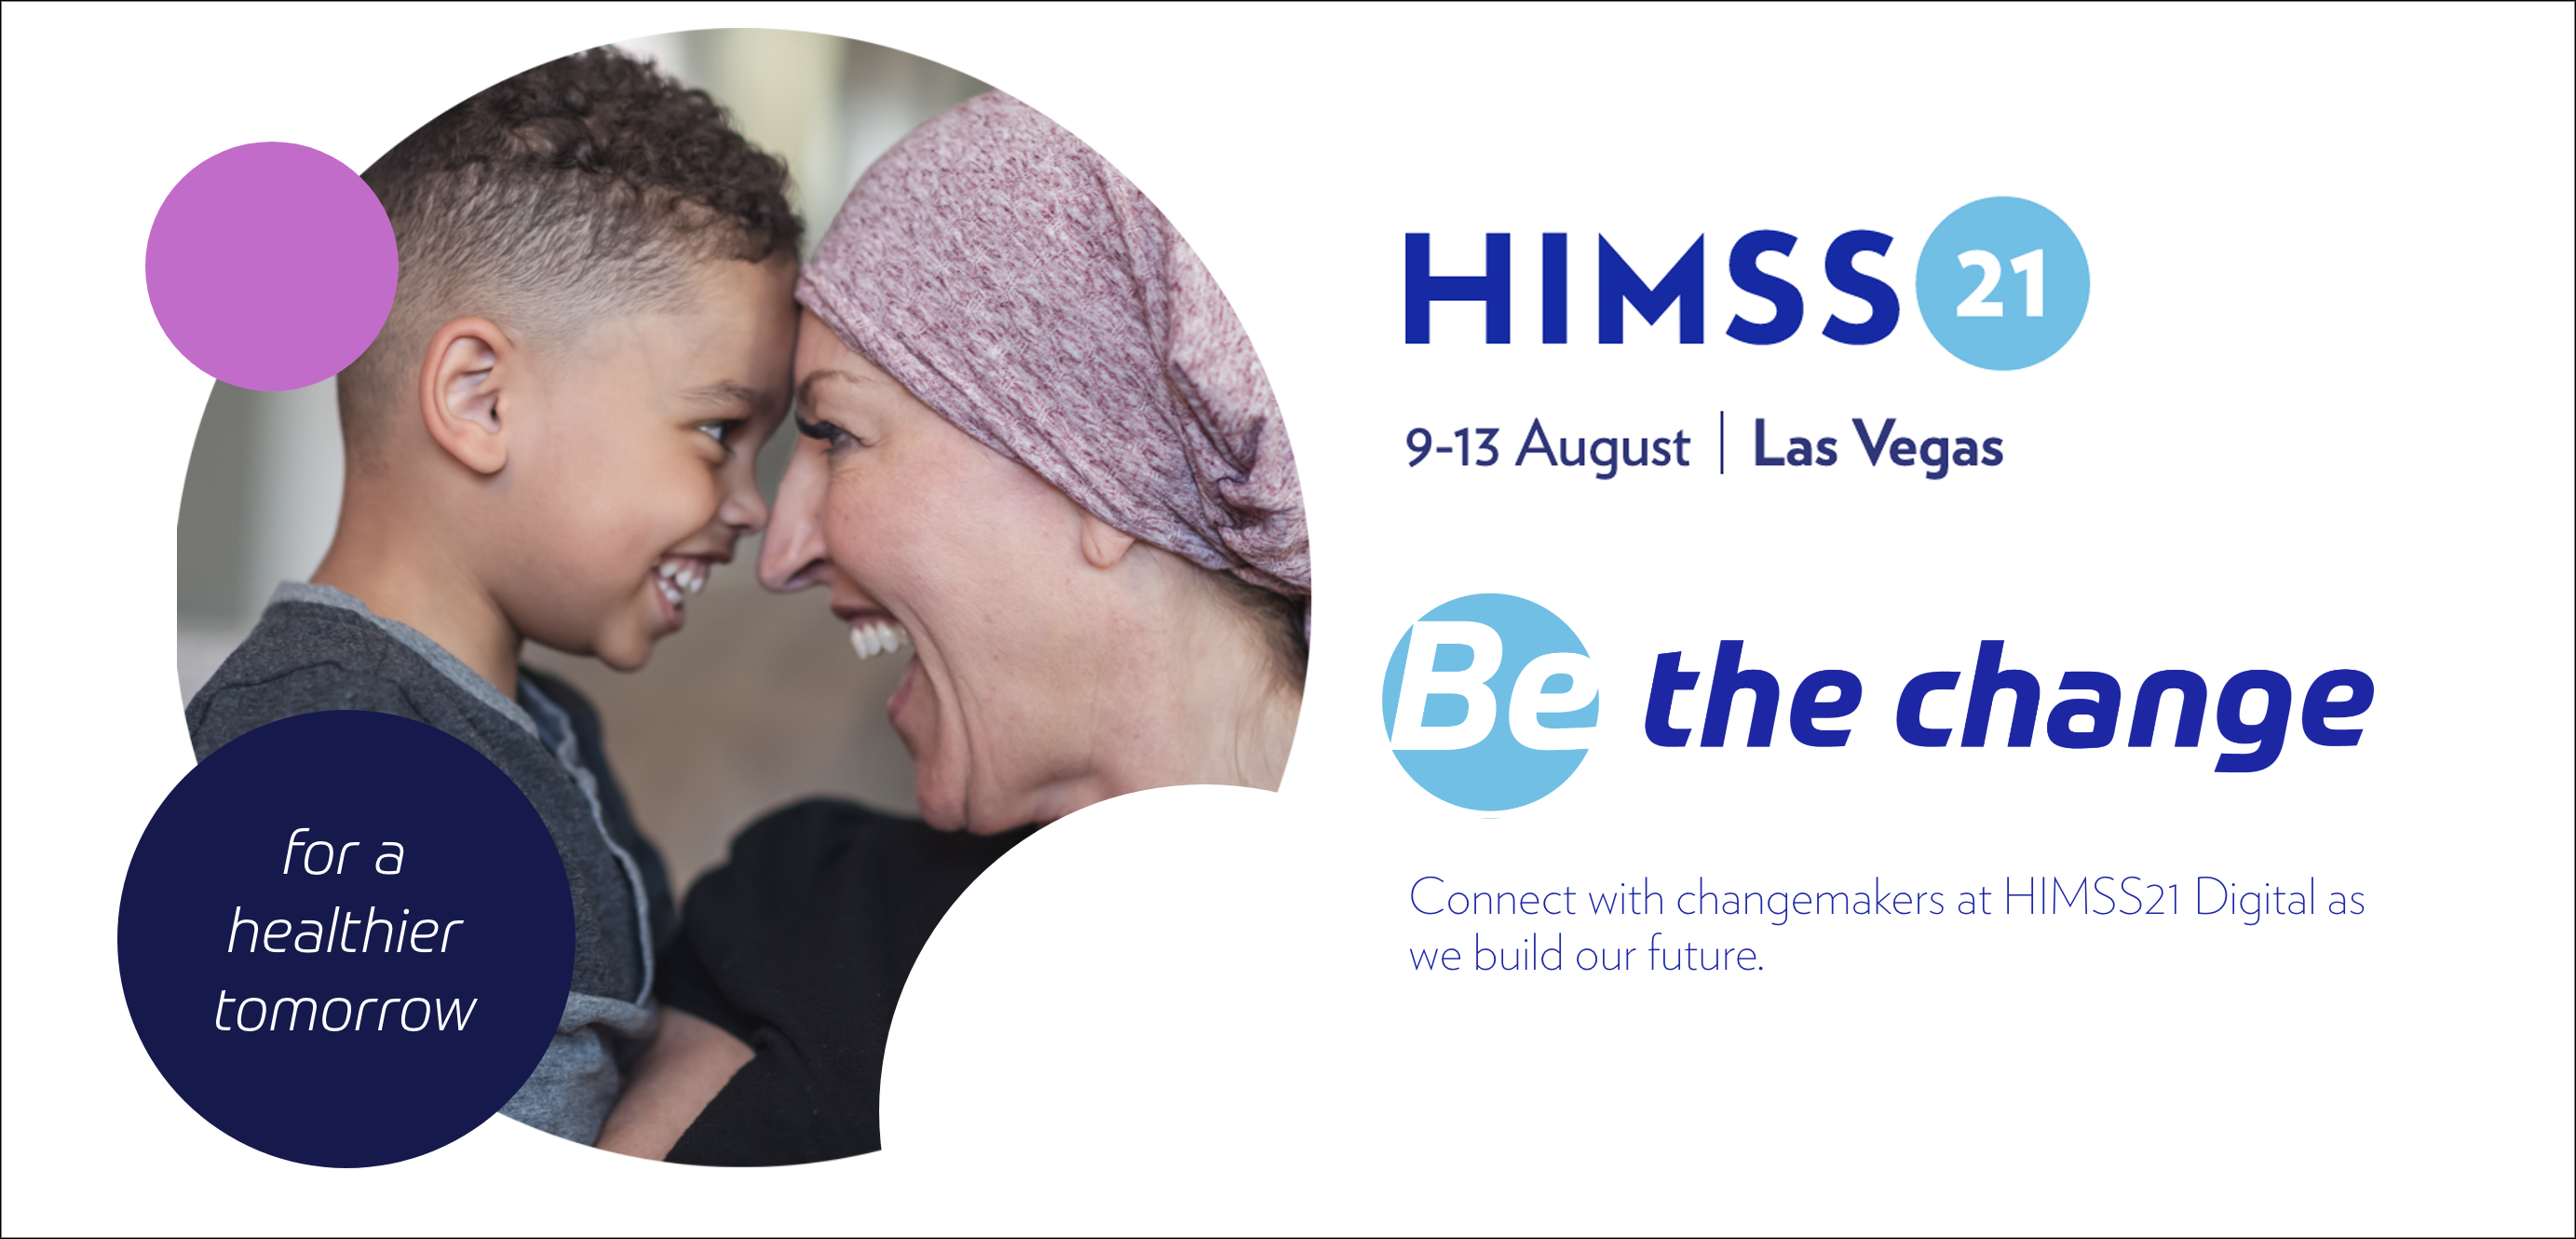 Notes from HIMSS 21